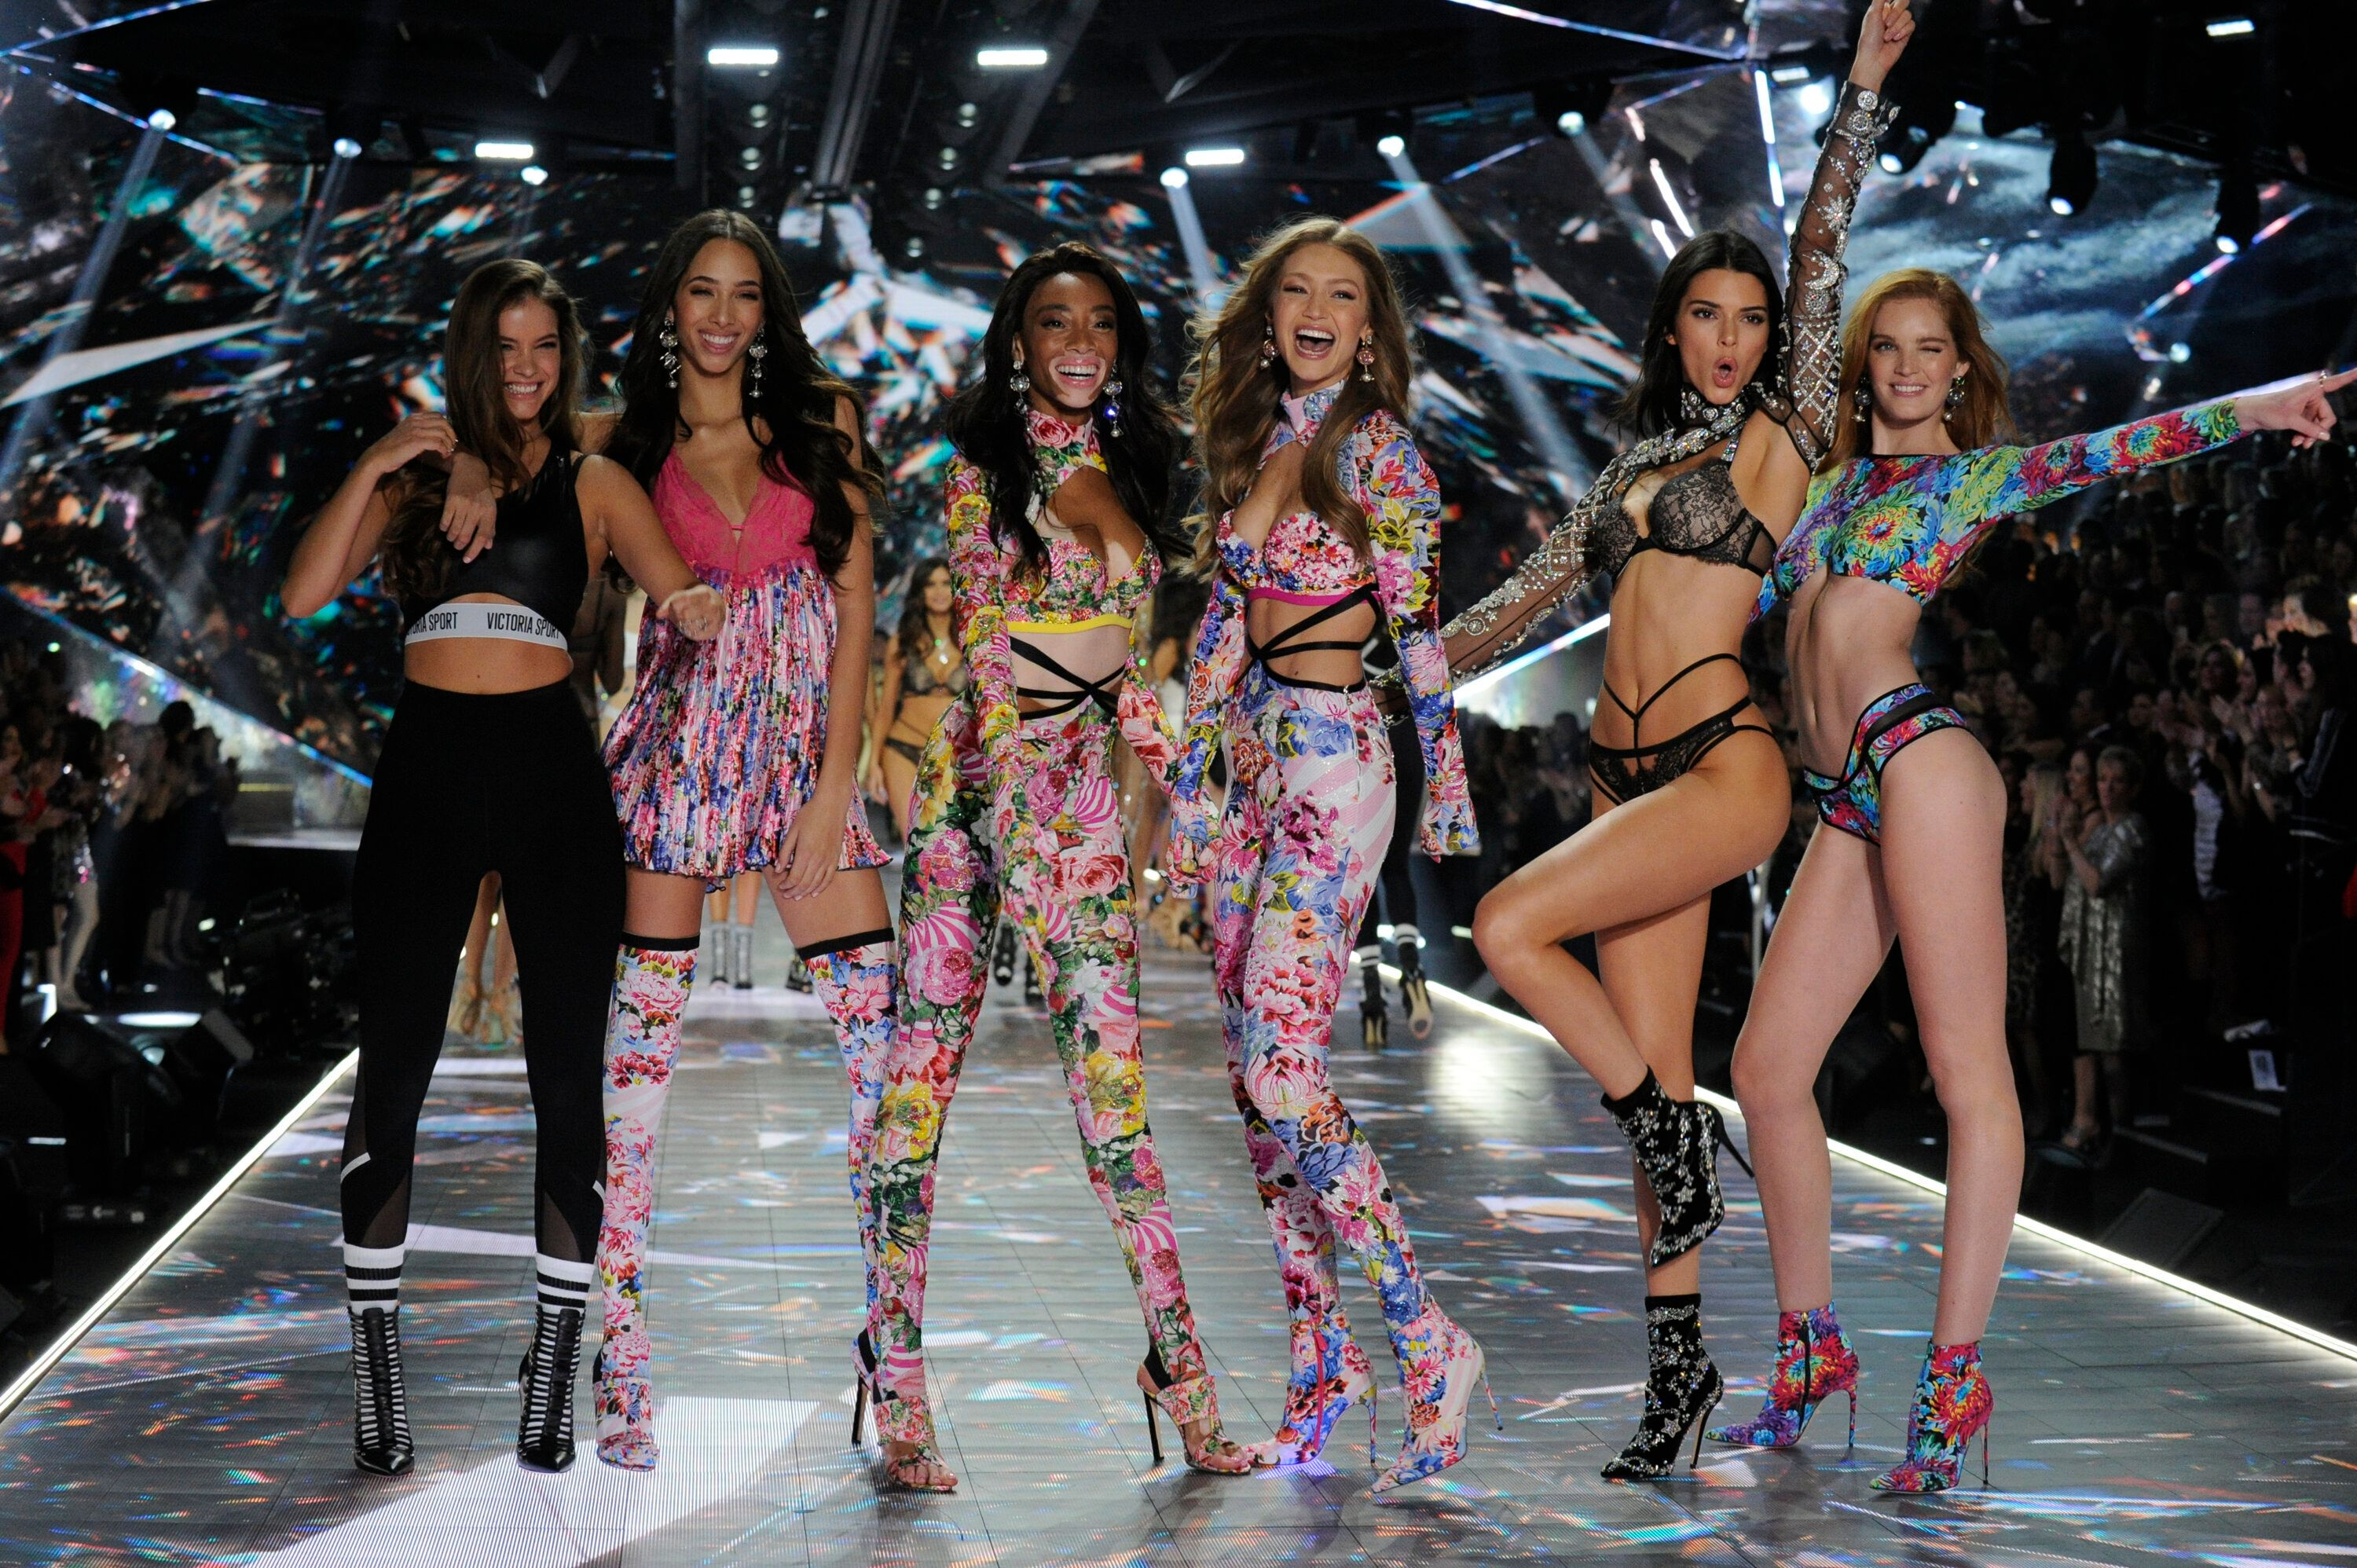 """VICTORIA'S SECRET FASHION SHOW HOLIDAY SPECIAL - Victoria's Secret's legendary Angels take to the runway for the 2018 Victoria's Secret Holiday Special, showcasing an all-star lineup of musical guests, including Bebe Rexha, The Chainsmokers, Halsey, Kelsea Ballerini, Rita Ora, Shawn Mendes and The Struts. Merging fashion, fantasy and entertainment, """"The Victoria's Secret Fashion Show Holiday Special"""" will air SUNDAY, DEC. 2 (10:0011:00 p.m. EST), on The ABC Television Network.   (Jeff Neira via Getty Images) VICTORIA'S SECRET FASHION SHOWS"""